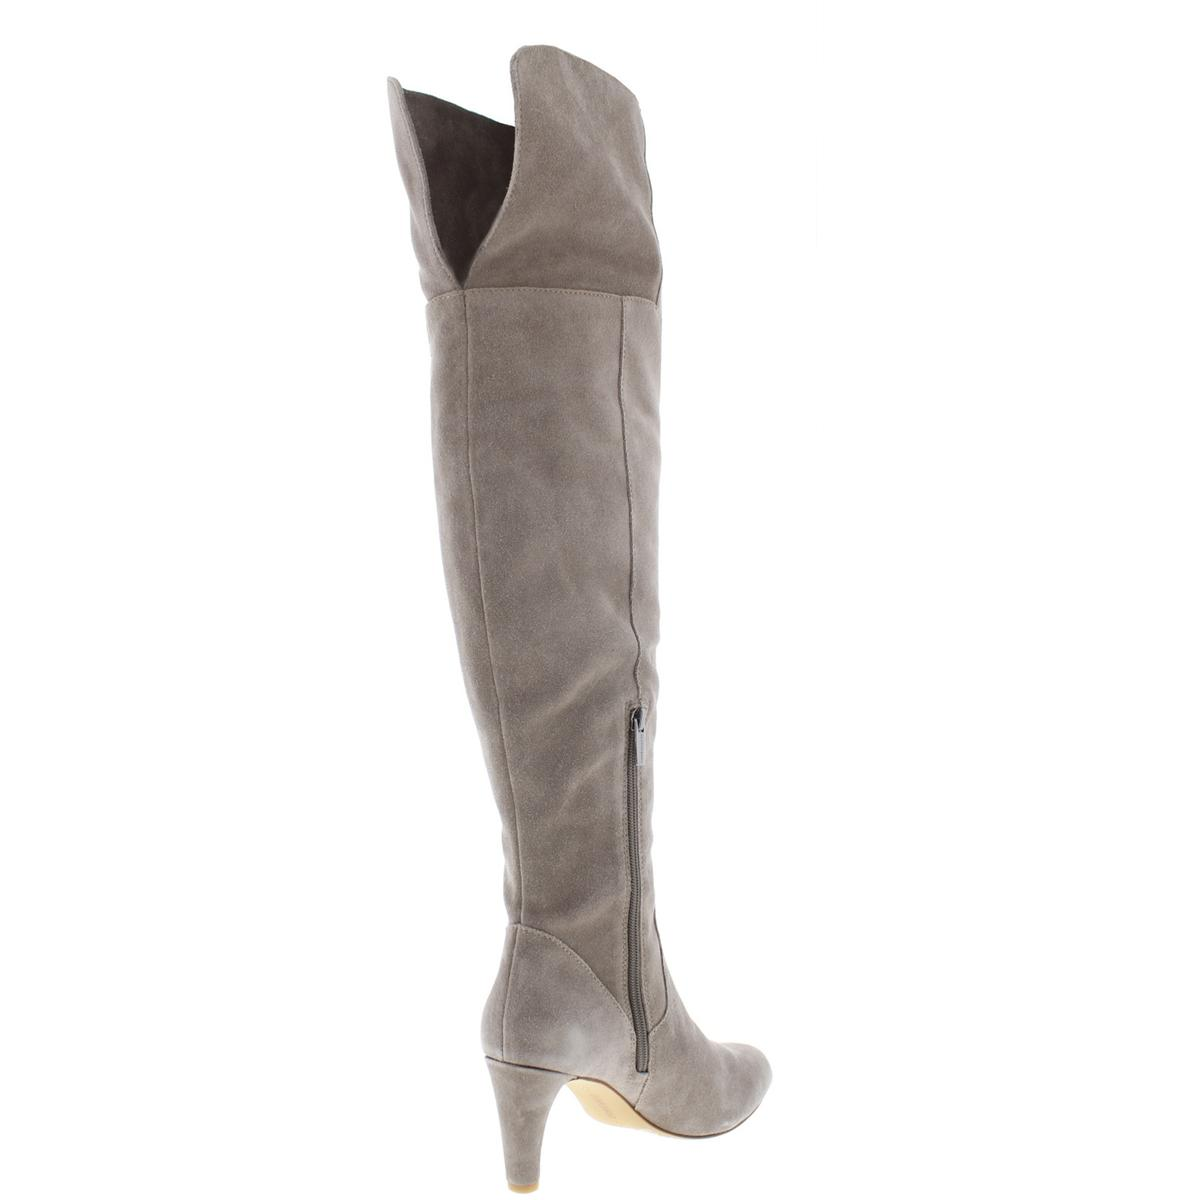 3e240af2d12 Vince Camuto Womens Armaceli Suede Round Toe Over-The-Knee Boots ...